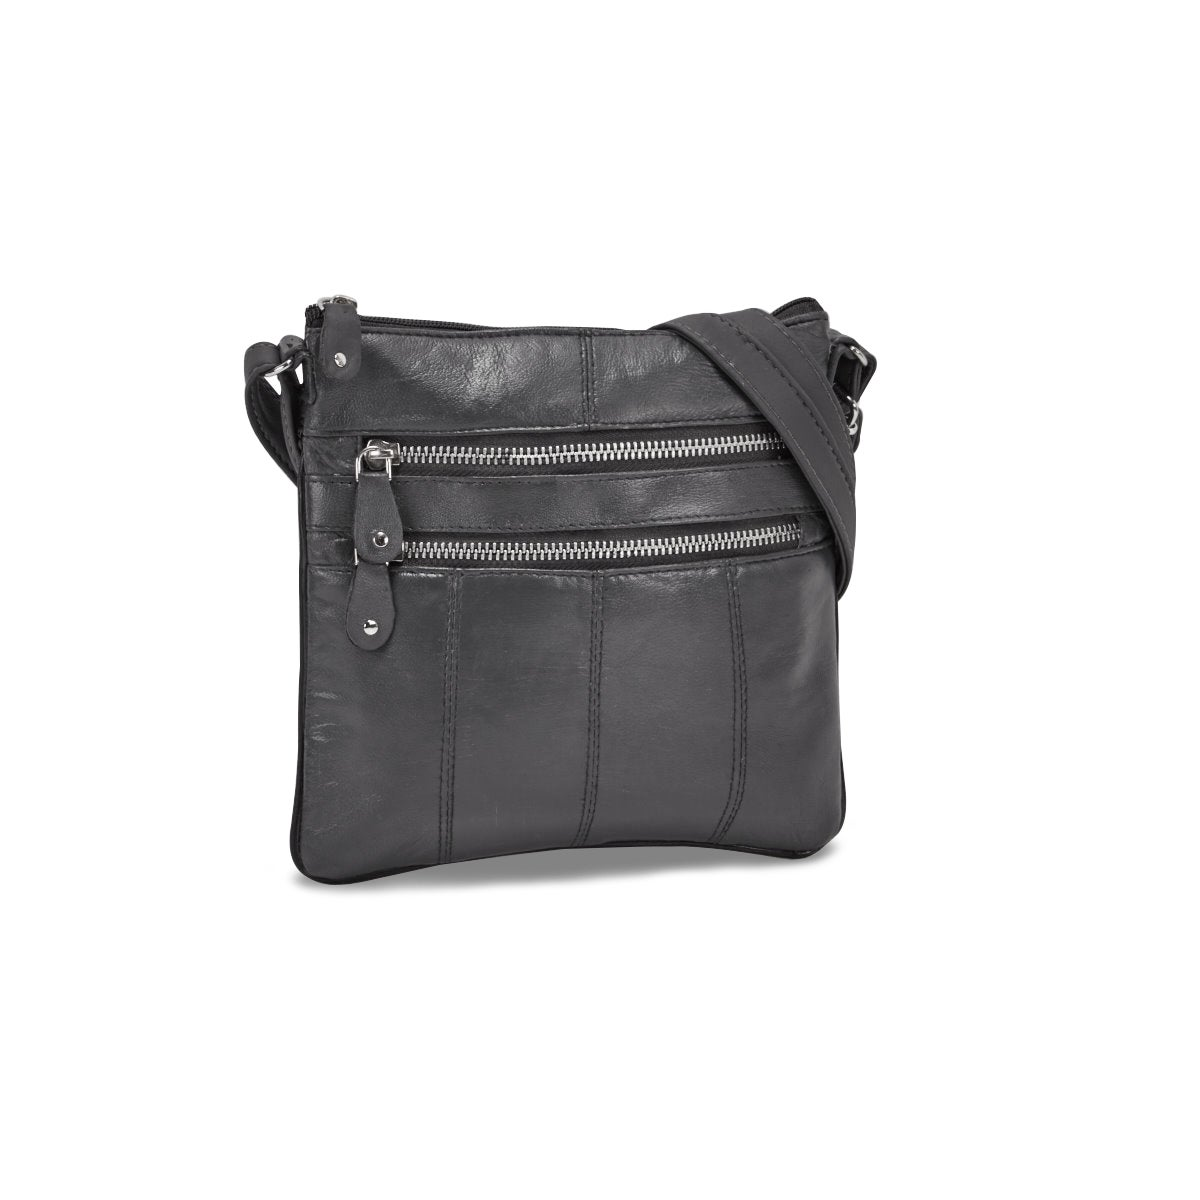 Lds grey sheep leather cross body bag